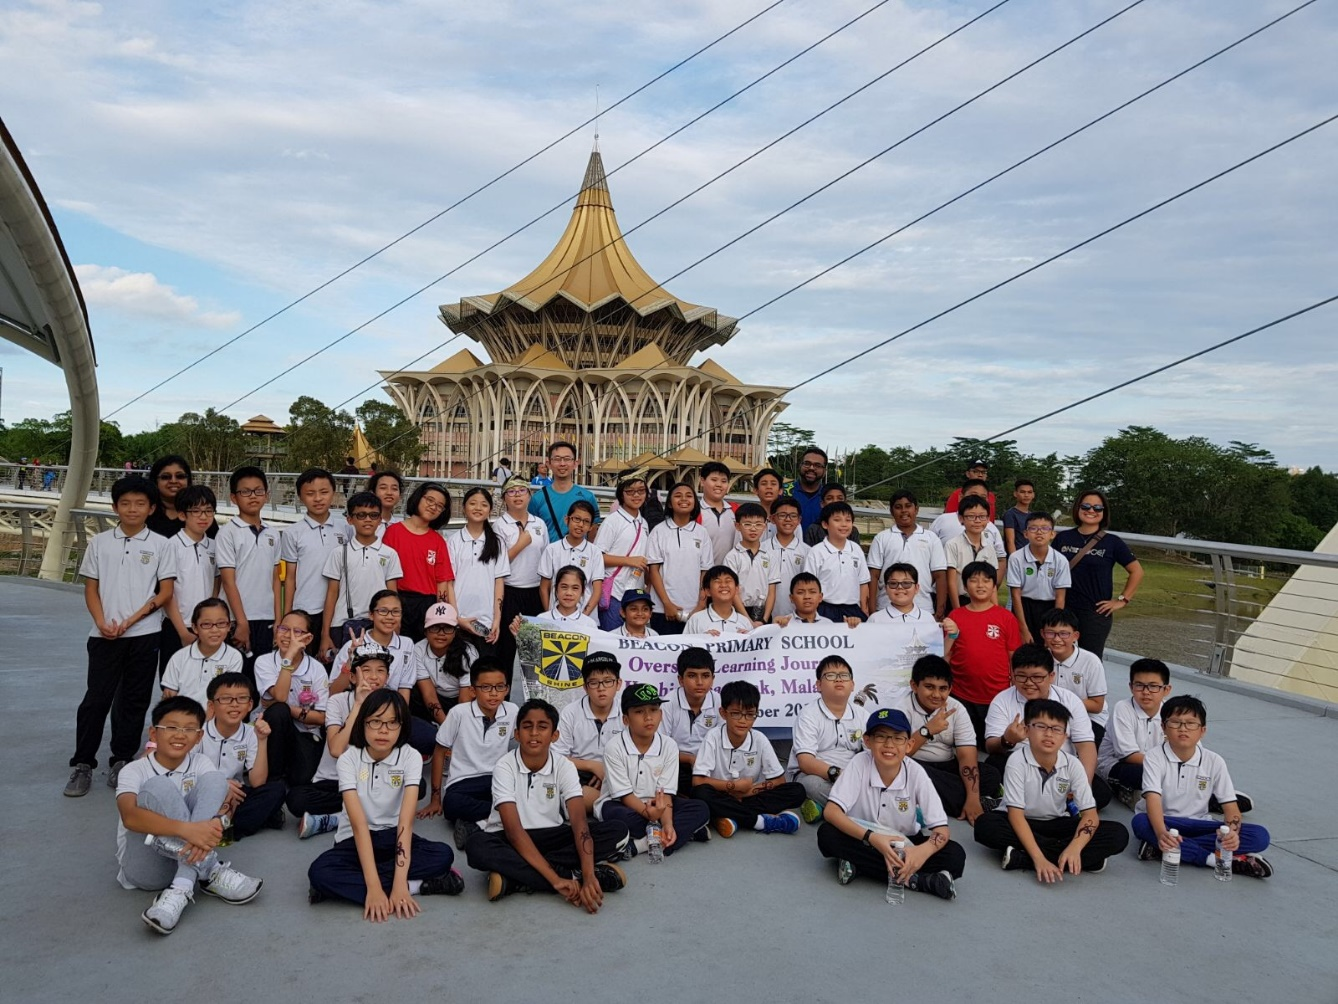 Group photo of Beacons at Sarawak